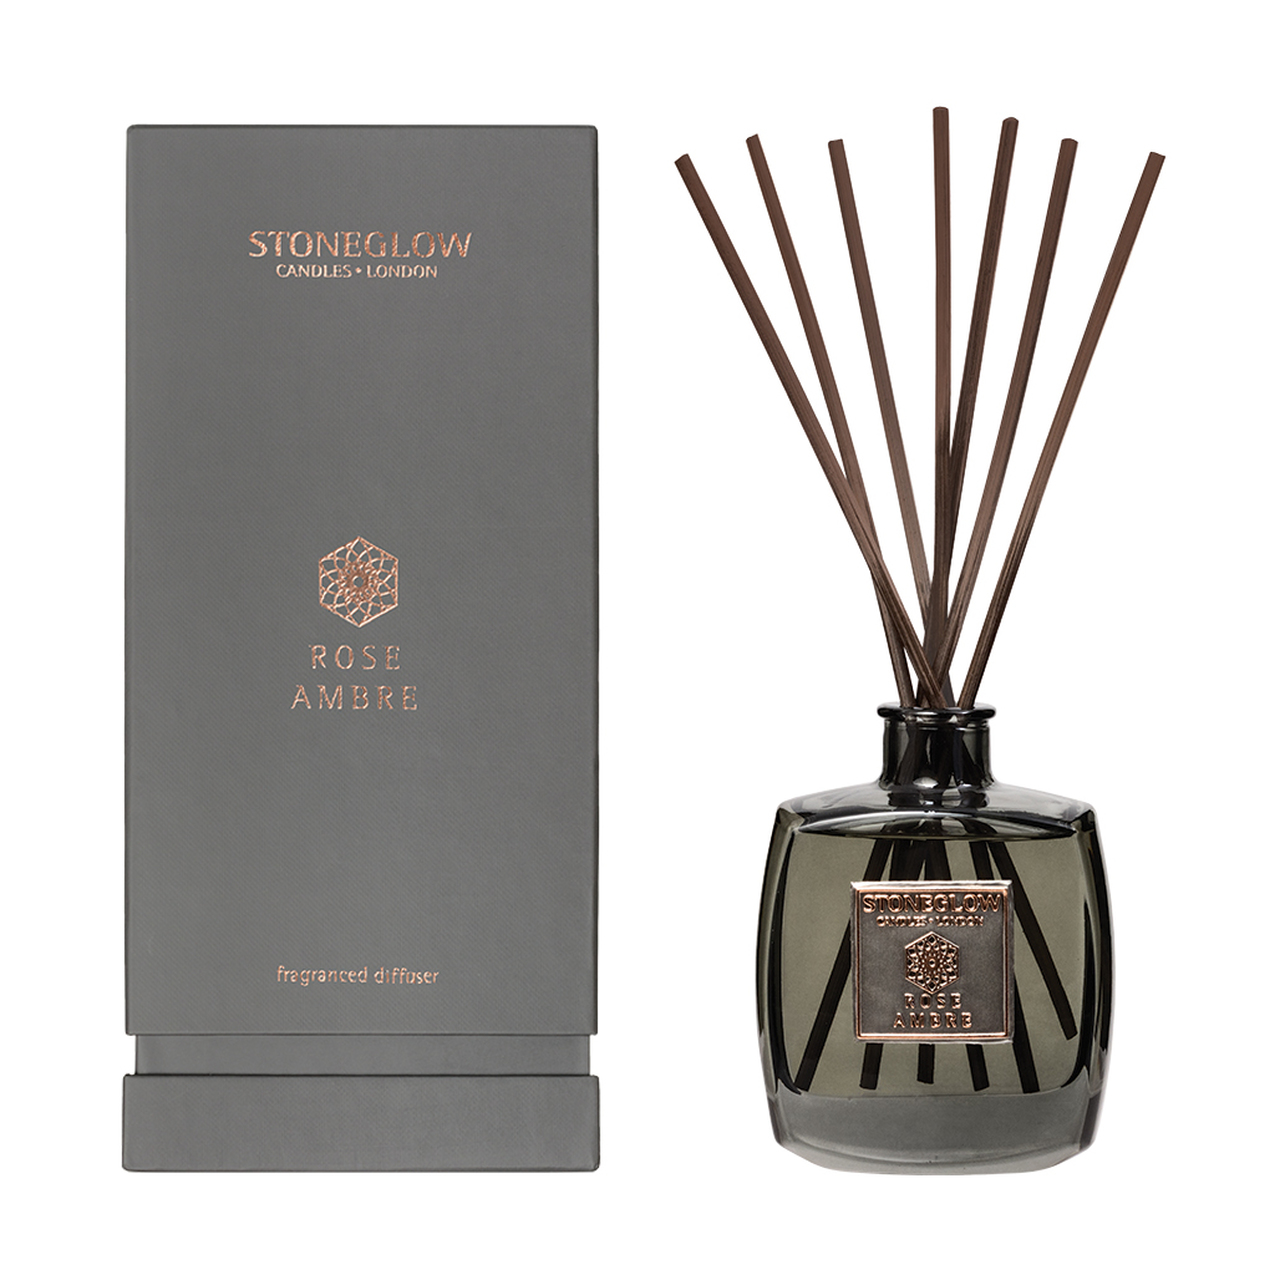 Stoneglow Rose Ambre Reed Diffuser